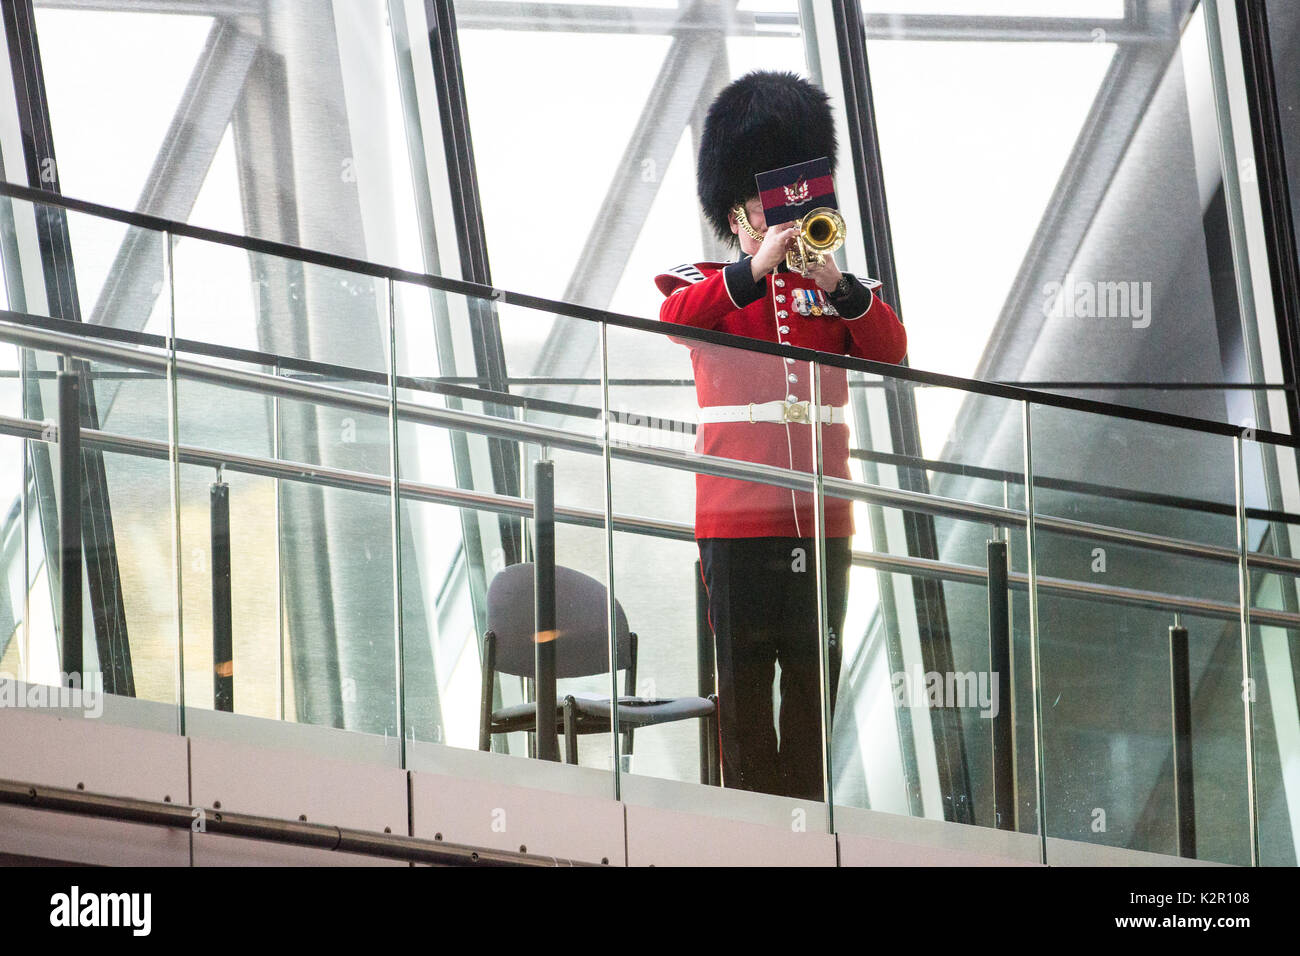 London, UK. 10th Nov, 2017. A bugler plays the Last Post at the Annual Service of Remembrance at City Hall, attended by Mayor of London Sadiq Khan, Jennette Arnold OBE AM, Chair of the London Assembly, Members of Parliament, London Assembly Members, Greater London Authority staff, representatives from London Government and public service organisations, and members of the Armed Forces, to commemorate those who served and lost their lives in the two world wars and other conflicts. Credit: Mark Kerrison/Alamy Live News - Stock Image